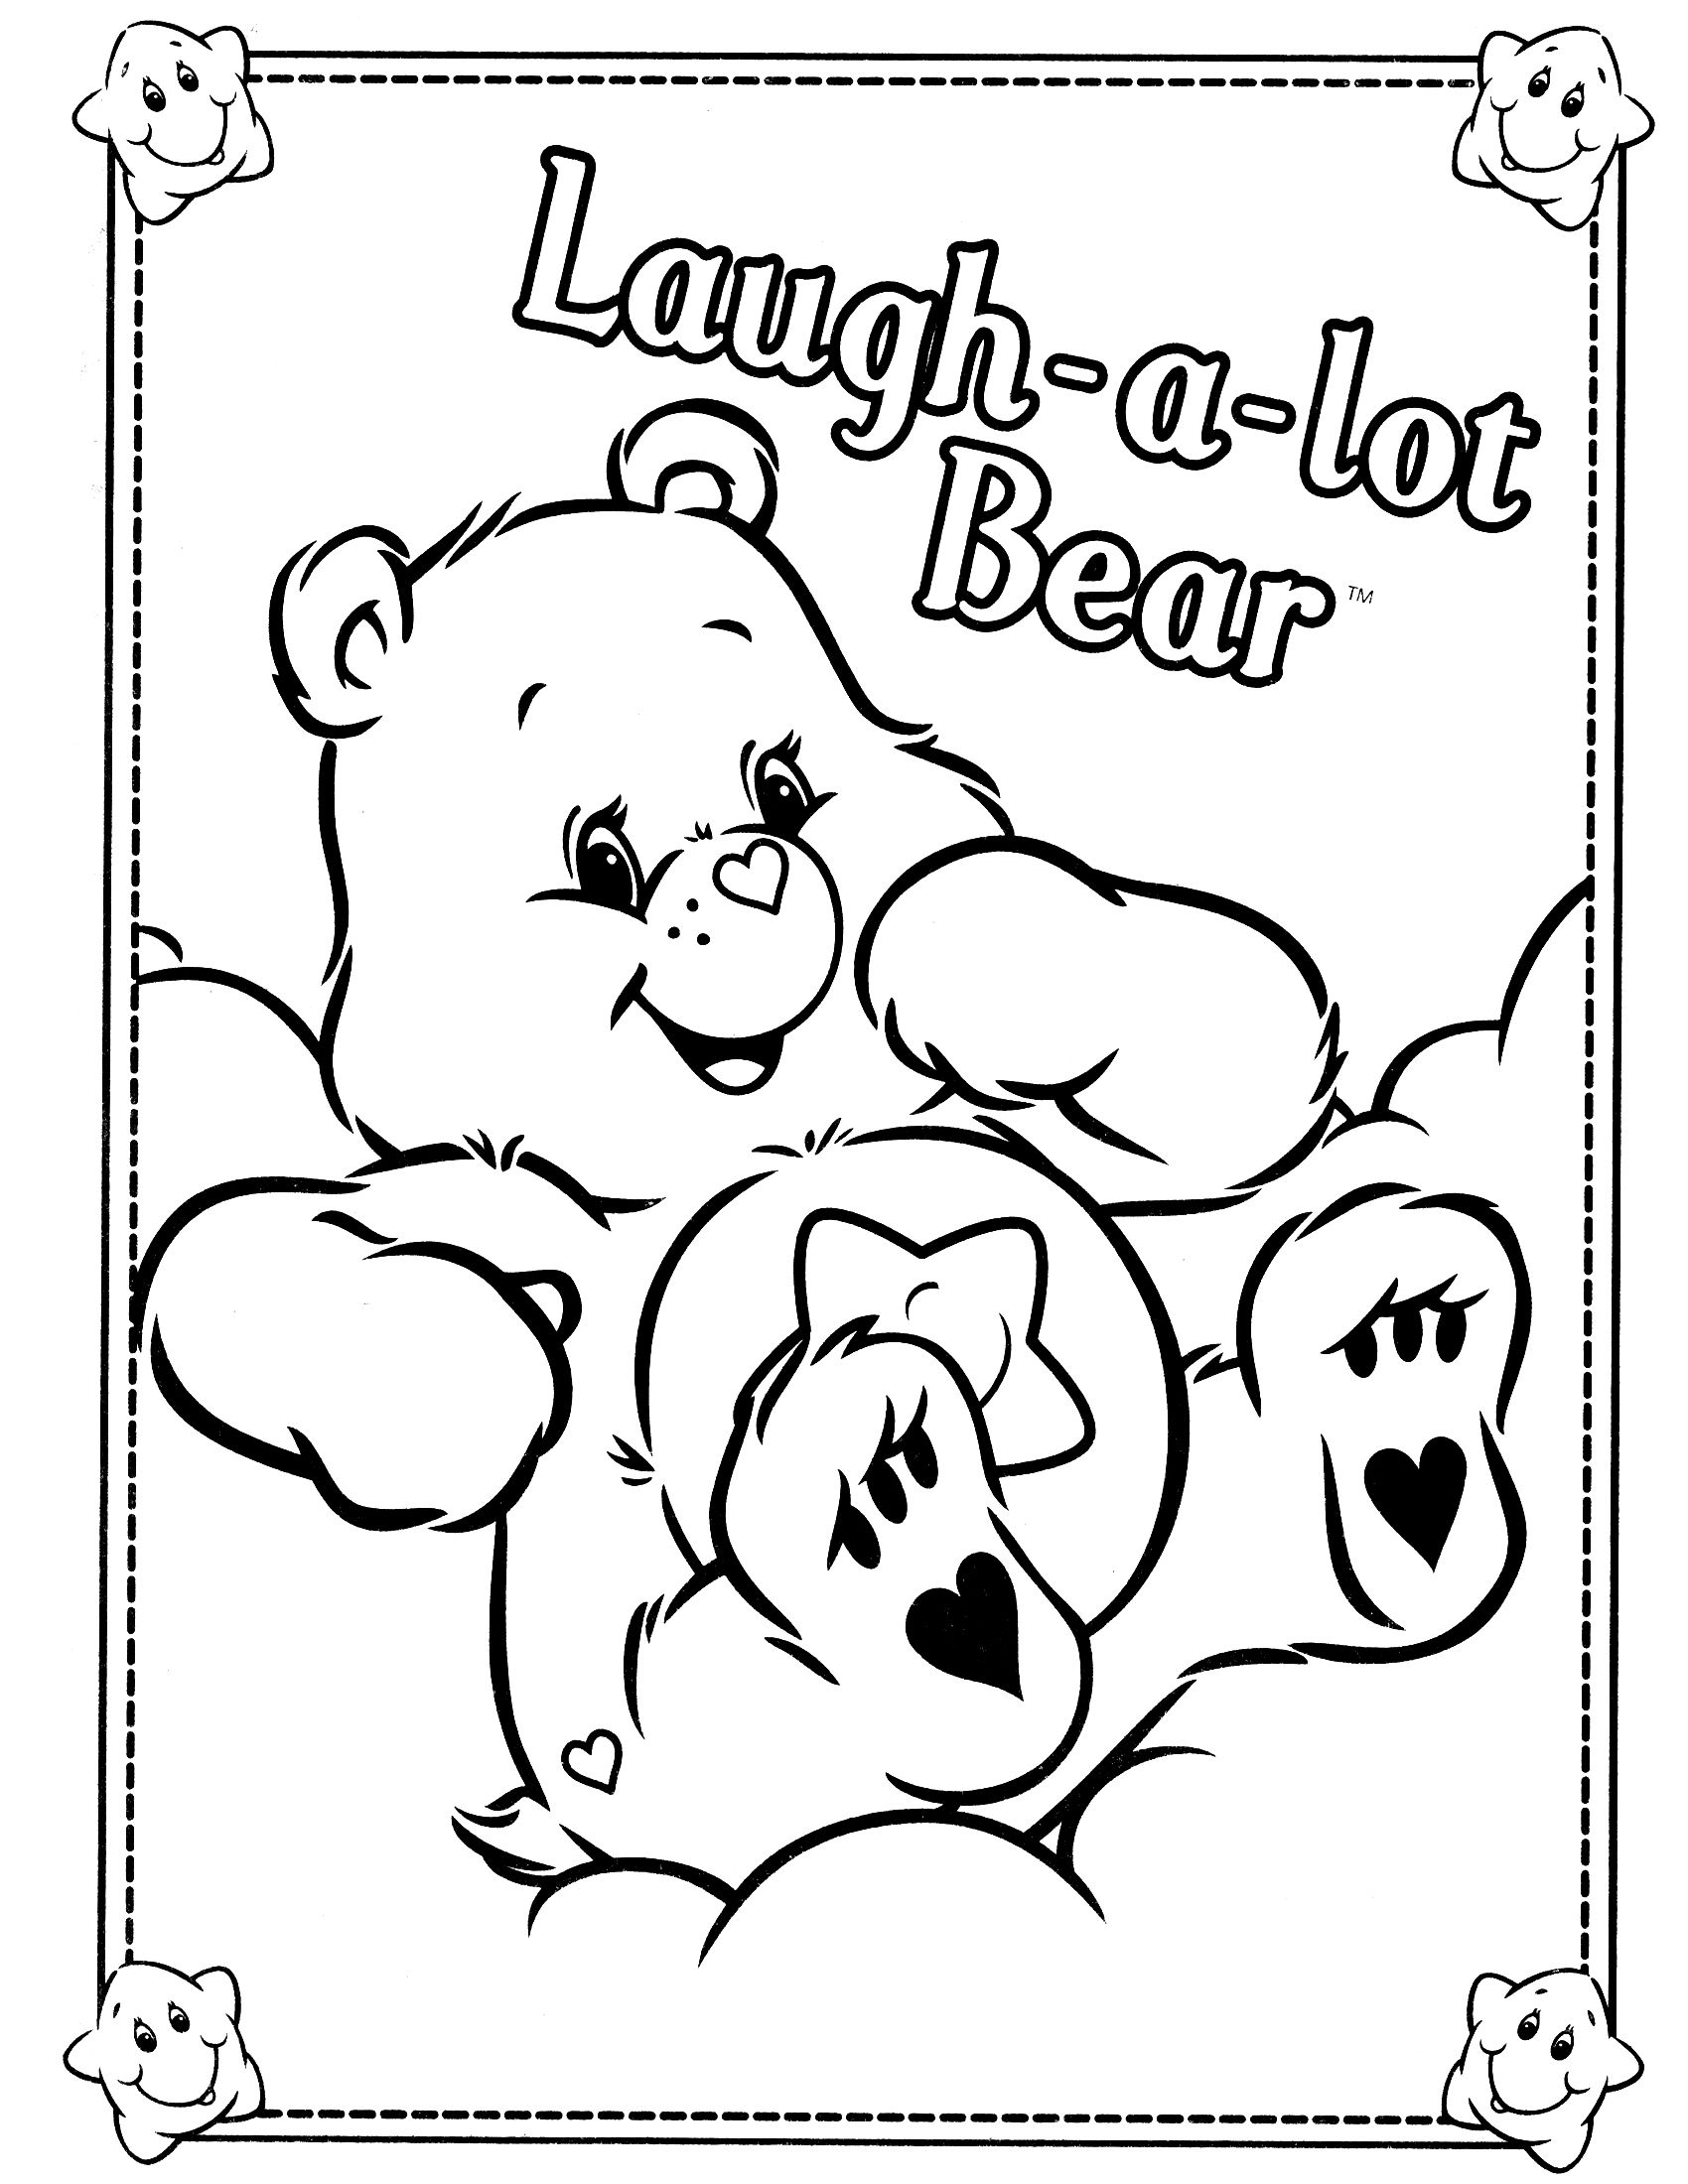 Share Bear Coloring Pages